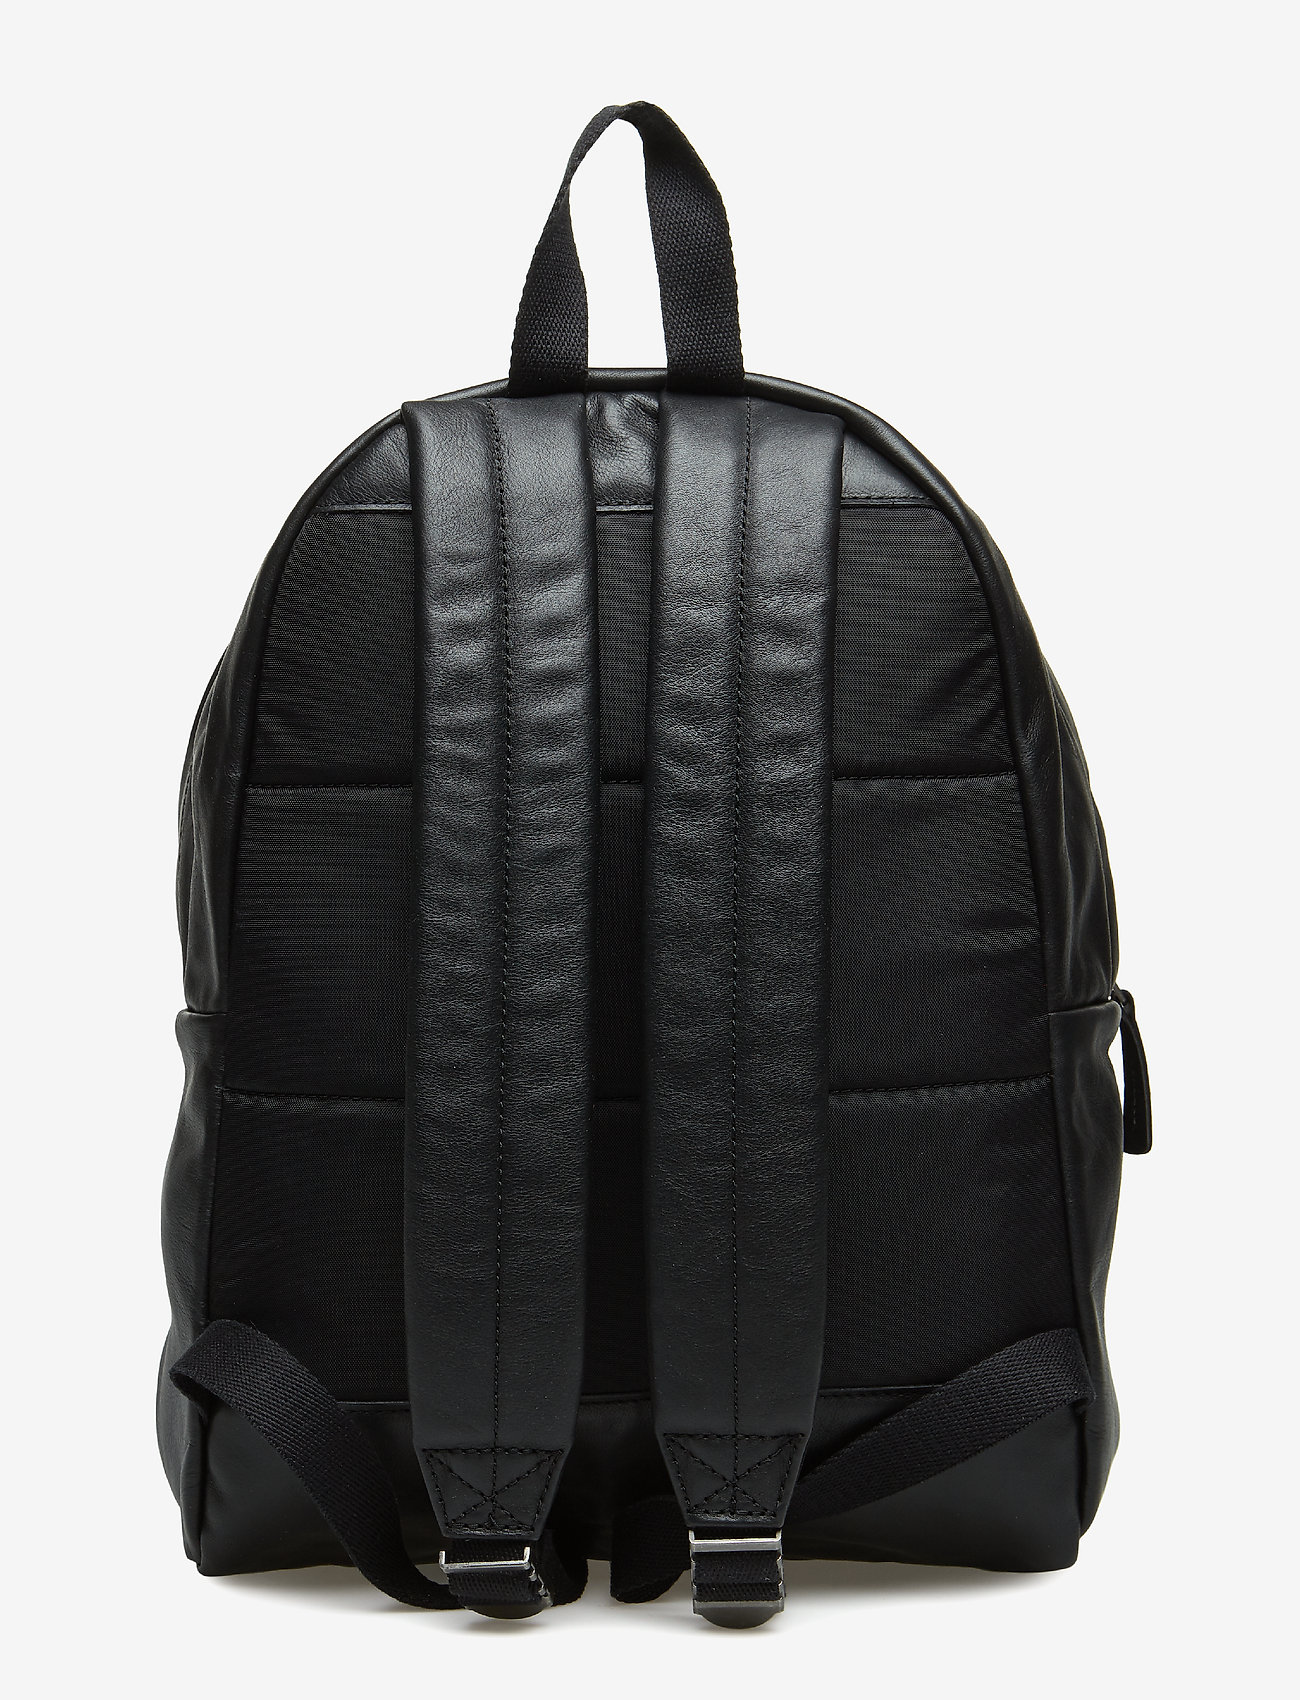 Eastpak - PADDED PAK'R - ryggsäckar - black eye-let - 1